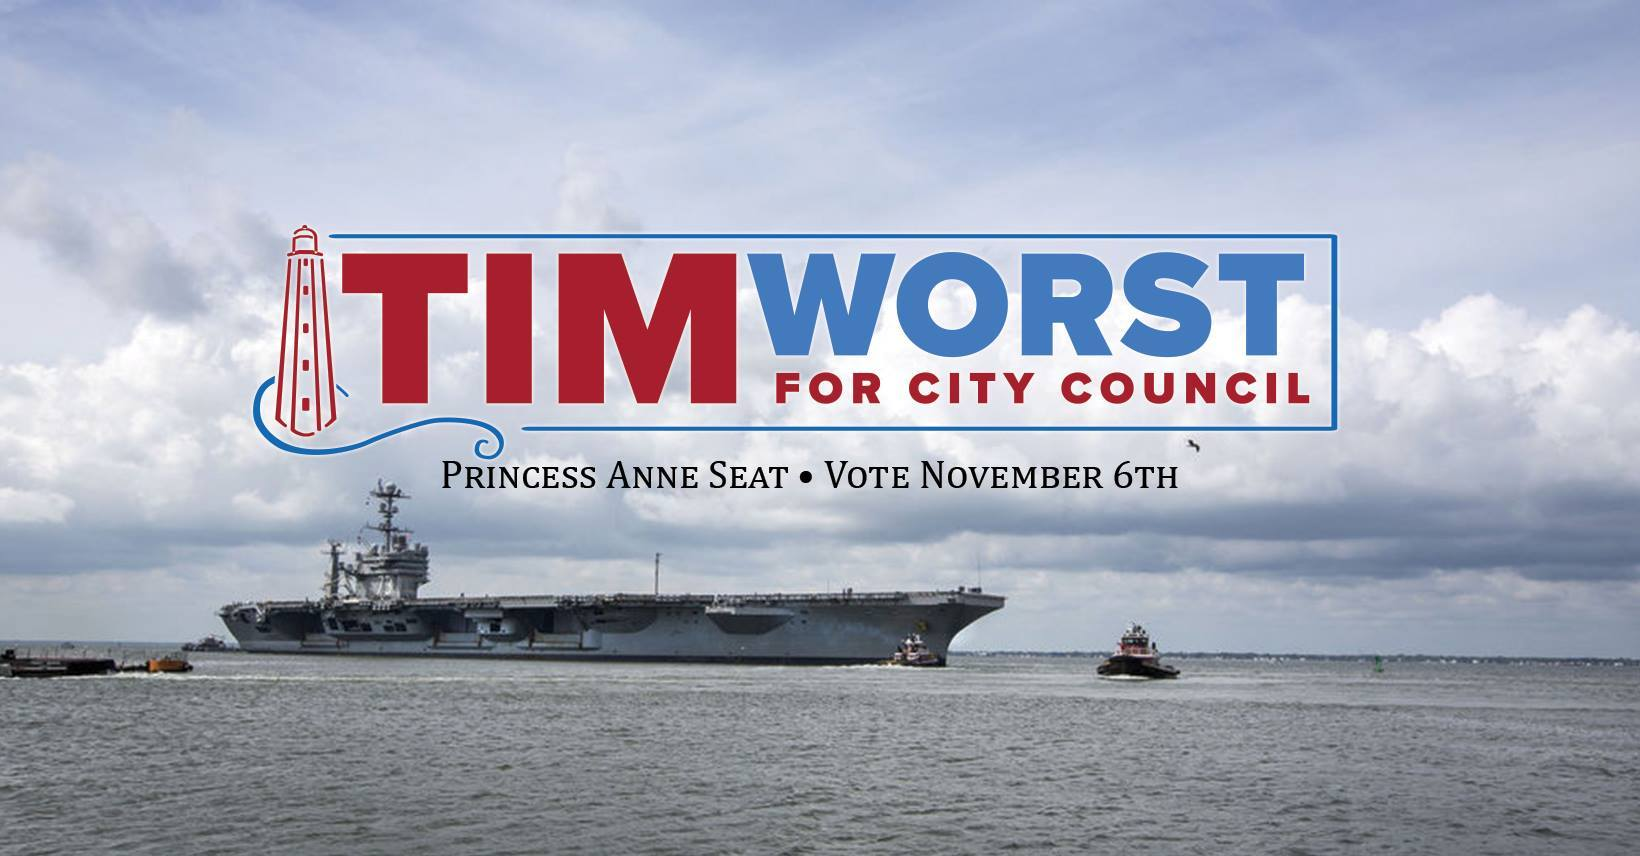 Tim Worst: Tim Worst for City Council